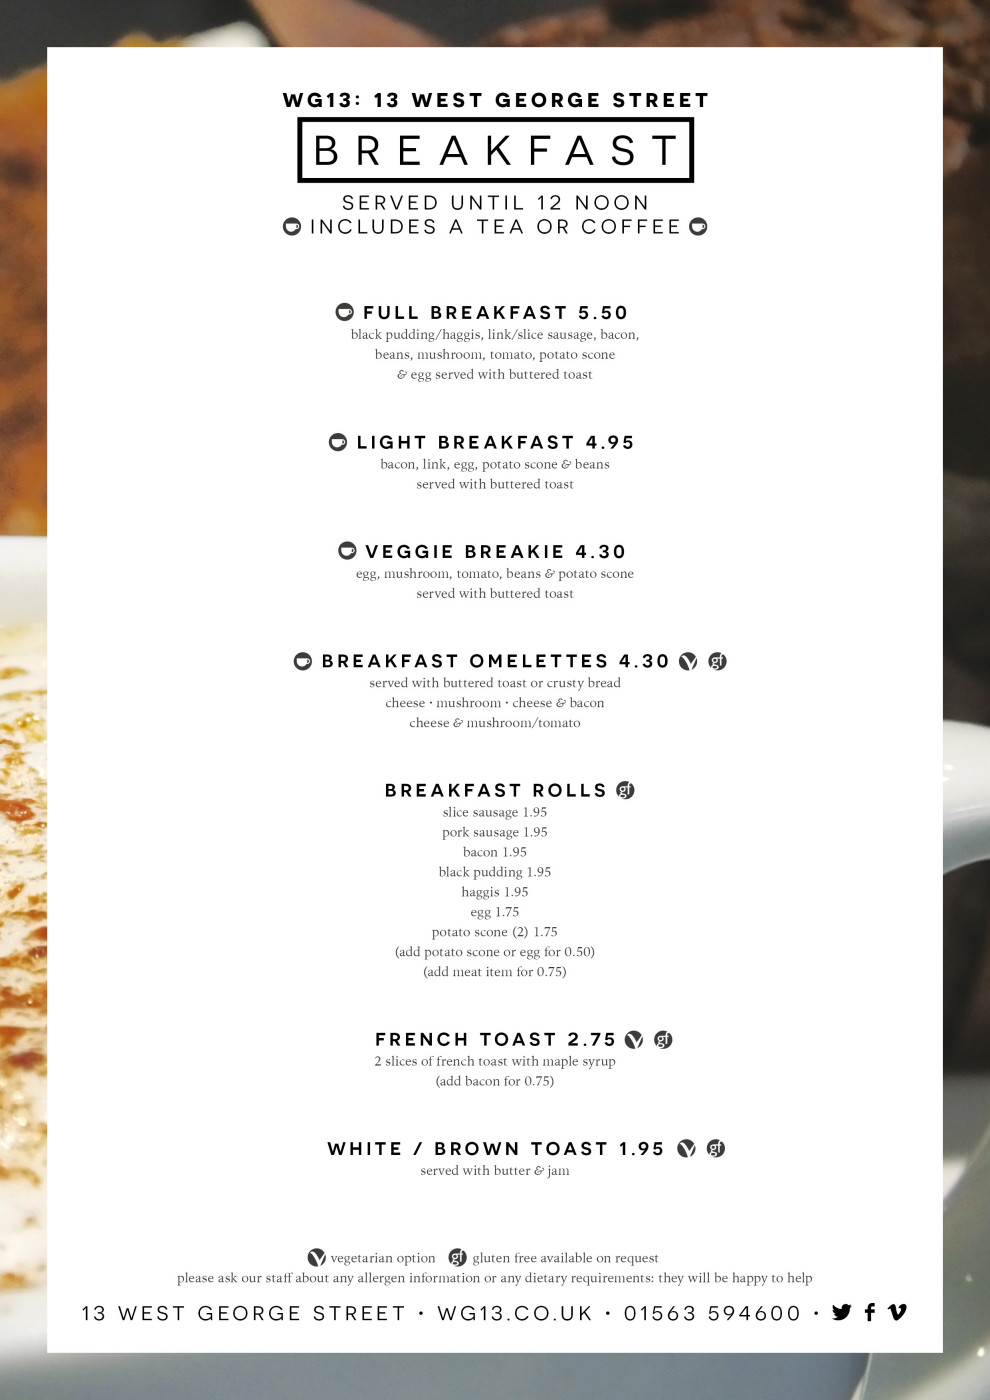 WG13 Breakfast Menu